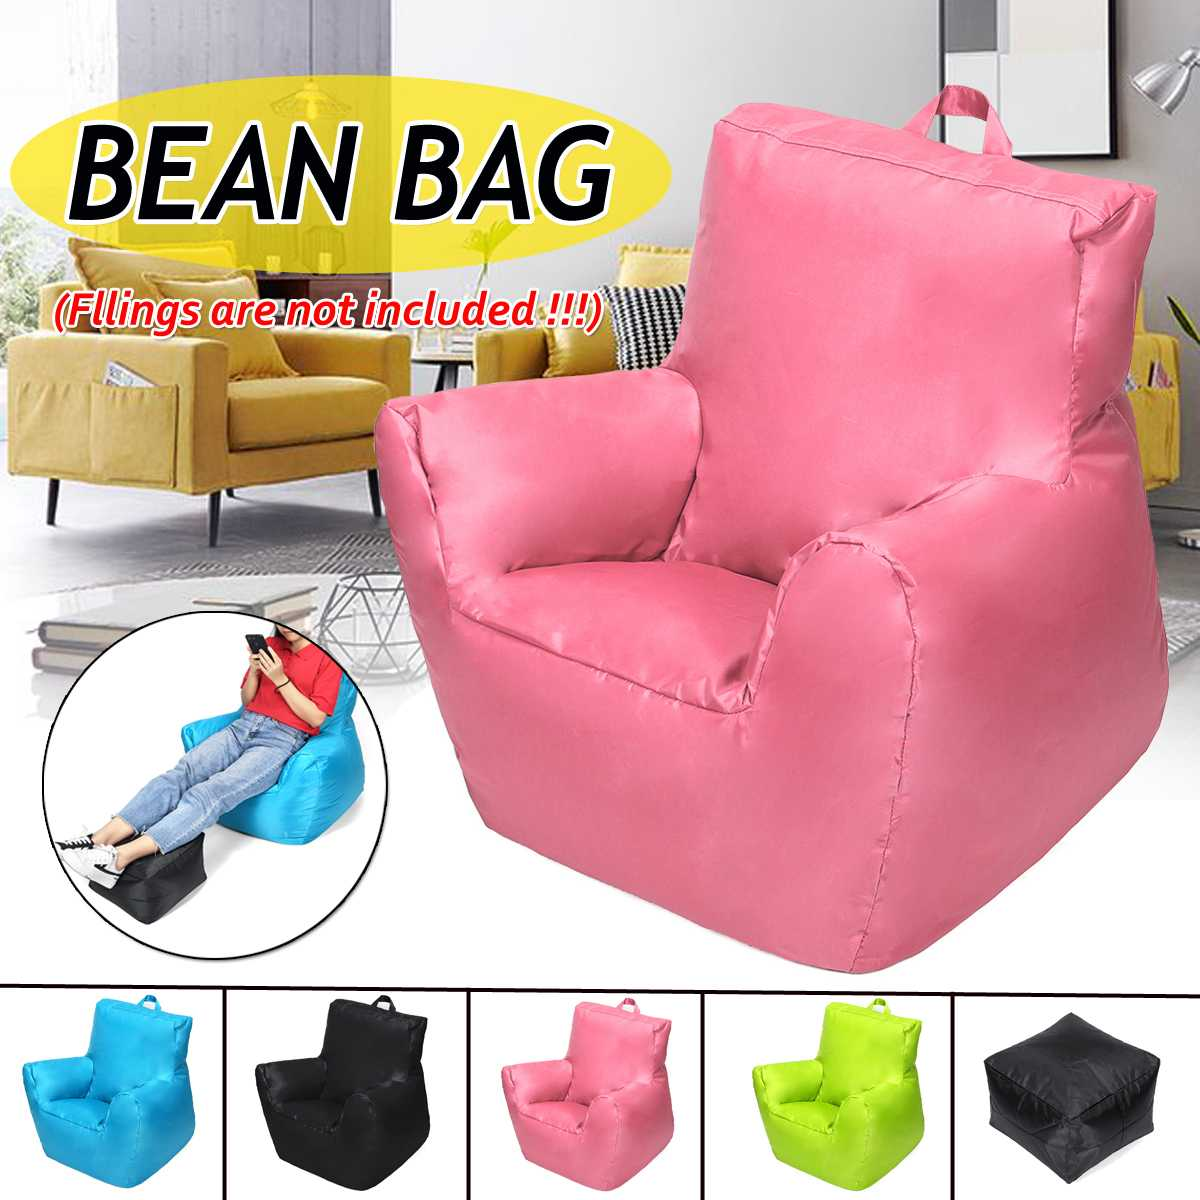 420D Oxford Cloth Lazy Sofas Cover Chairs Bean Bag Sofas Lounger Seat Bean Bag Pouf Puff Couch Tatami Living Room For Children